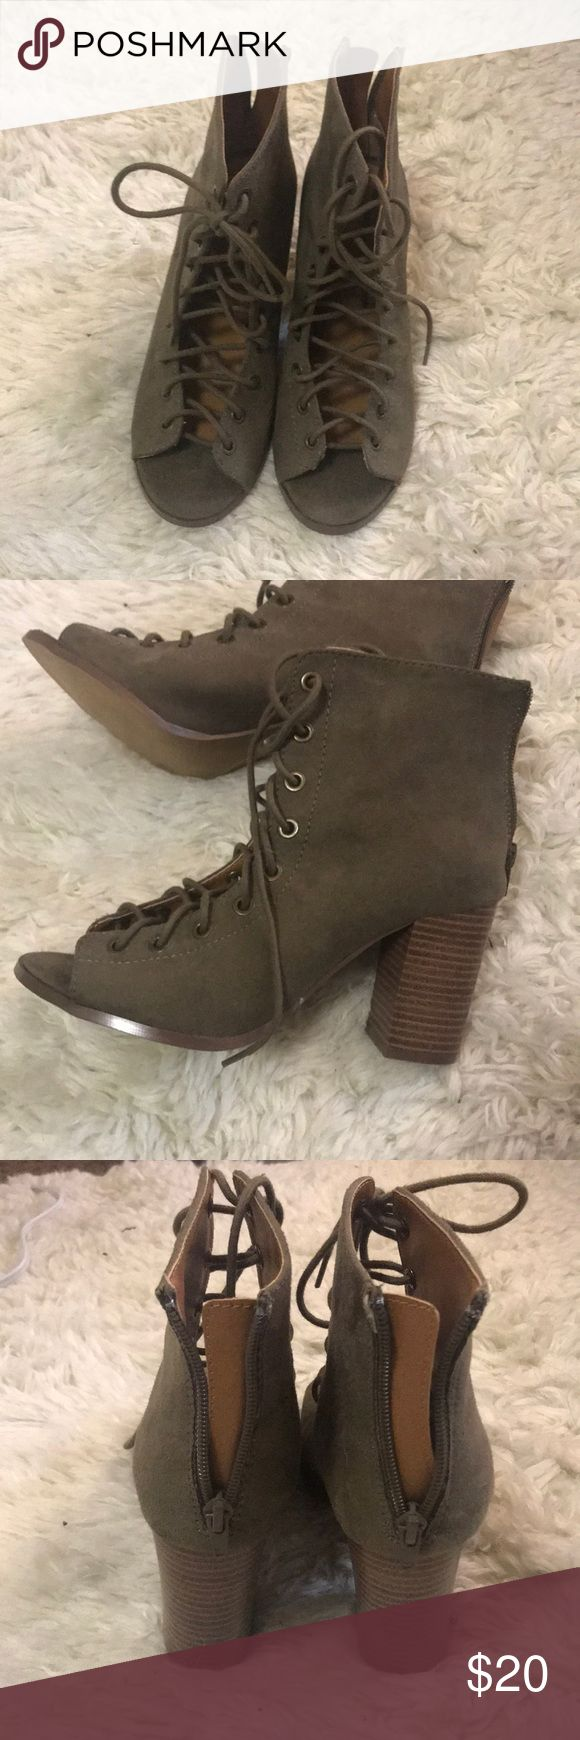 "Charlotte Russe Lace Up Booties Olive Size 7 Brand new! Soles look a bit dirty from trying on in store but never worn out. Great color and style for this season! Size 7 in women's. It's an olive green color. Heels are approx. 4"". Very comfortable because of the chunky heel. Charlotte Russe Shoes Lace Up Boots"